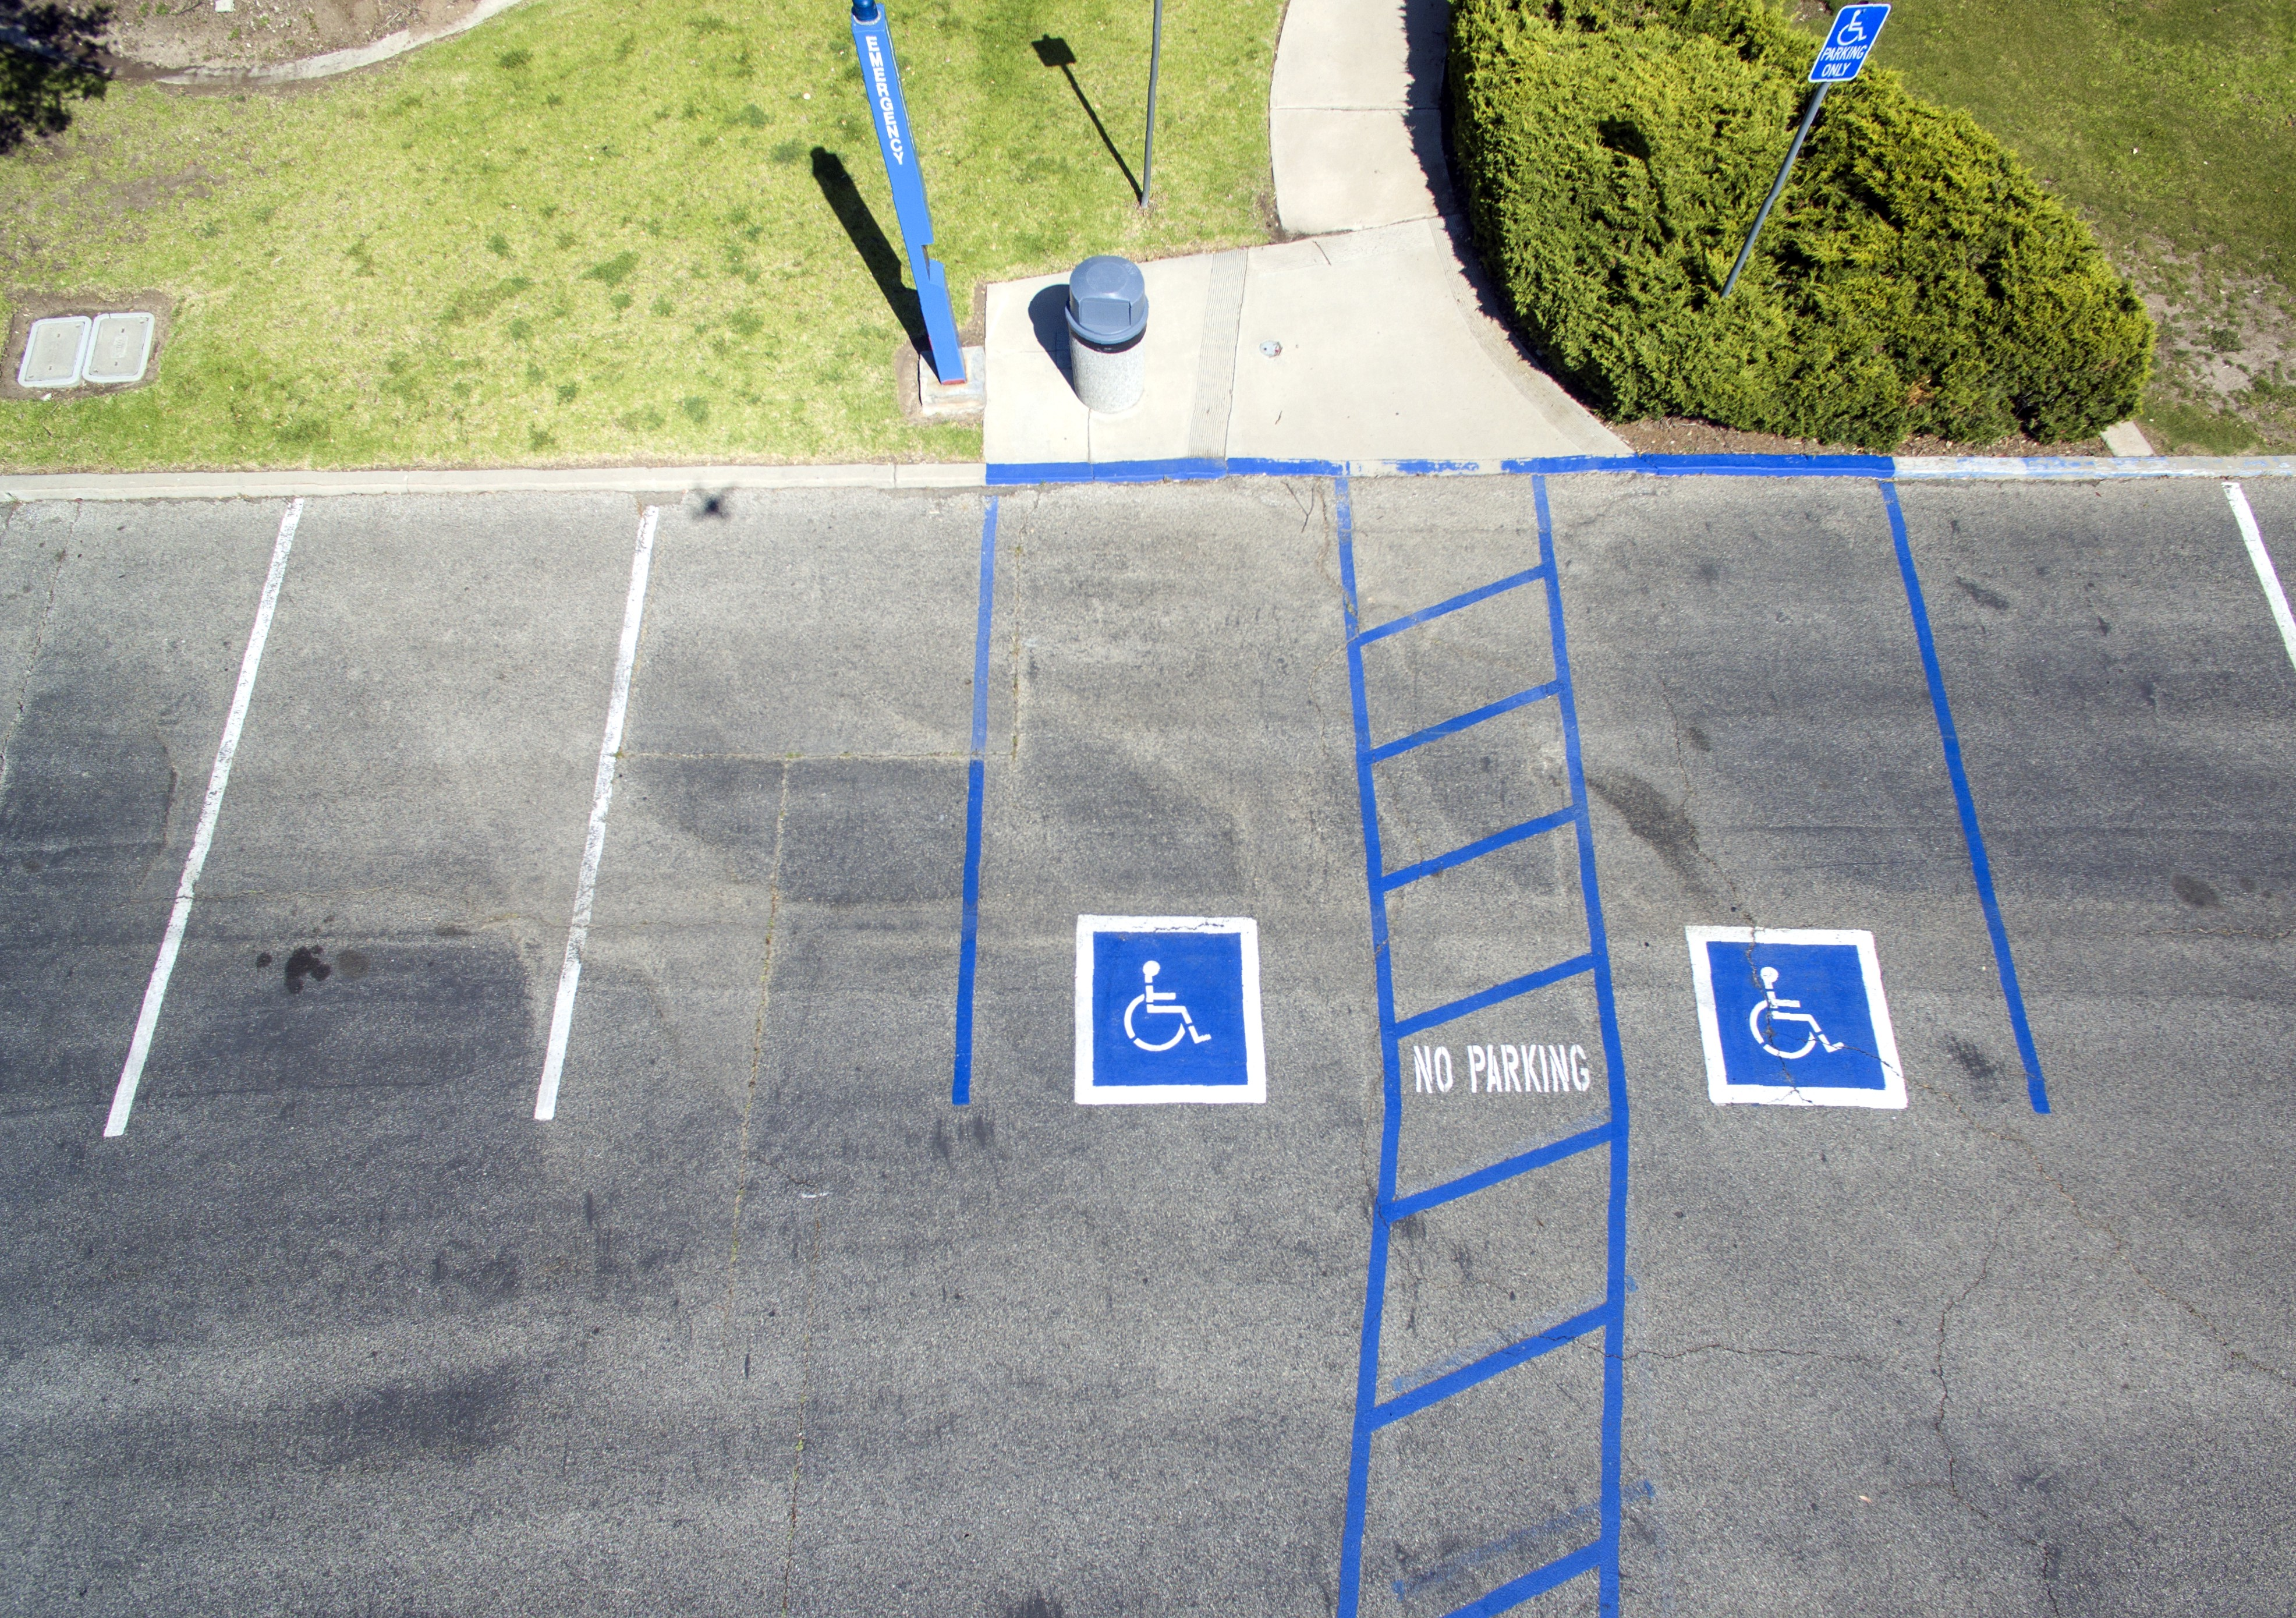 A zoomed-out image of two accessible parking spaces side-by-side, sharing an accessible aisle. The parking lot is grey, and the accessible parking spaces are painted in bright blue paint.